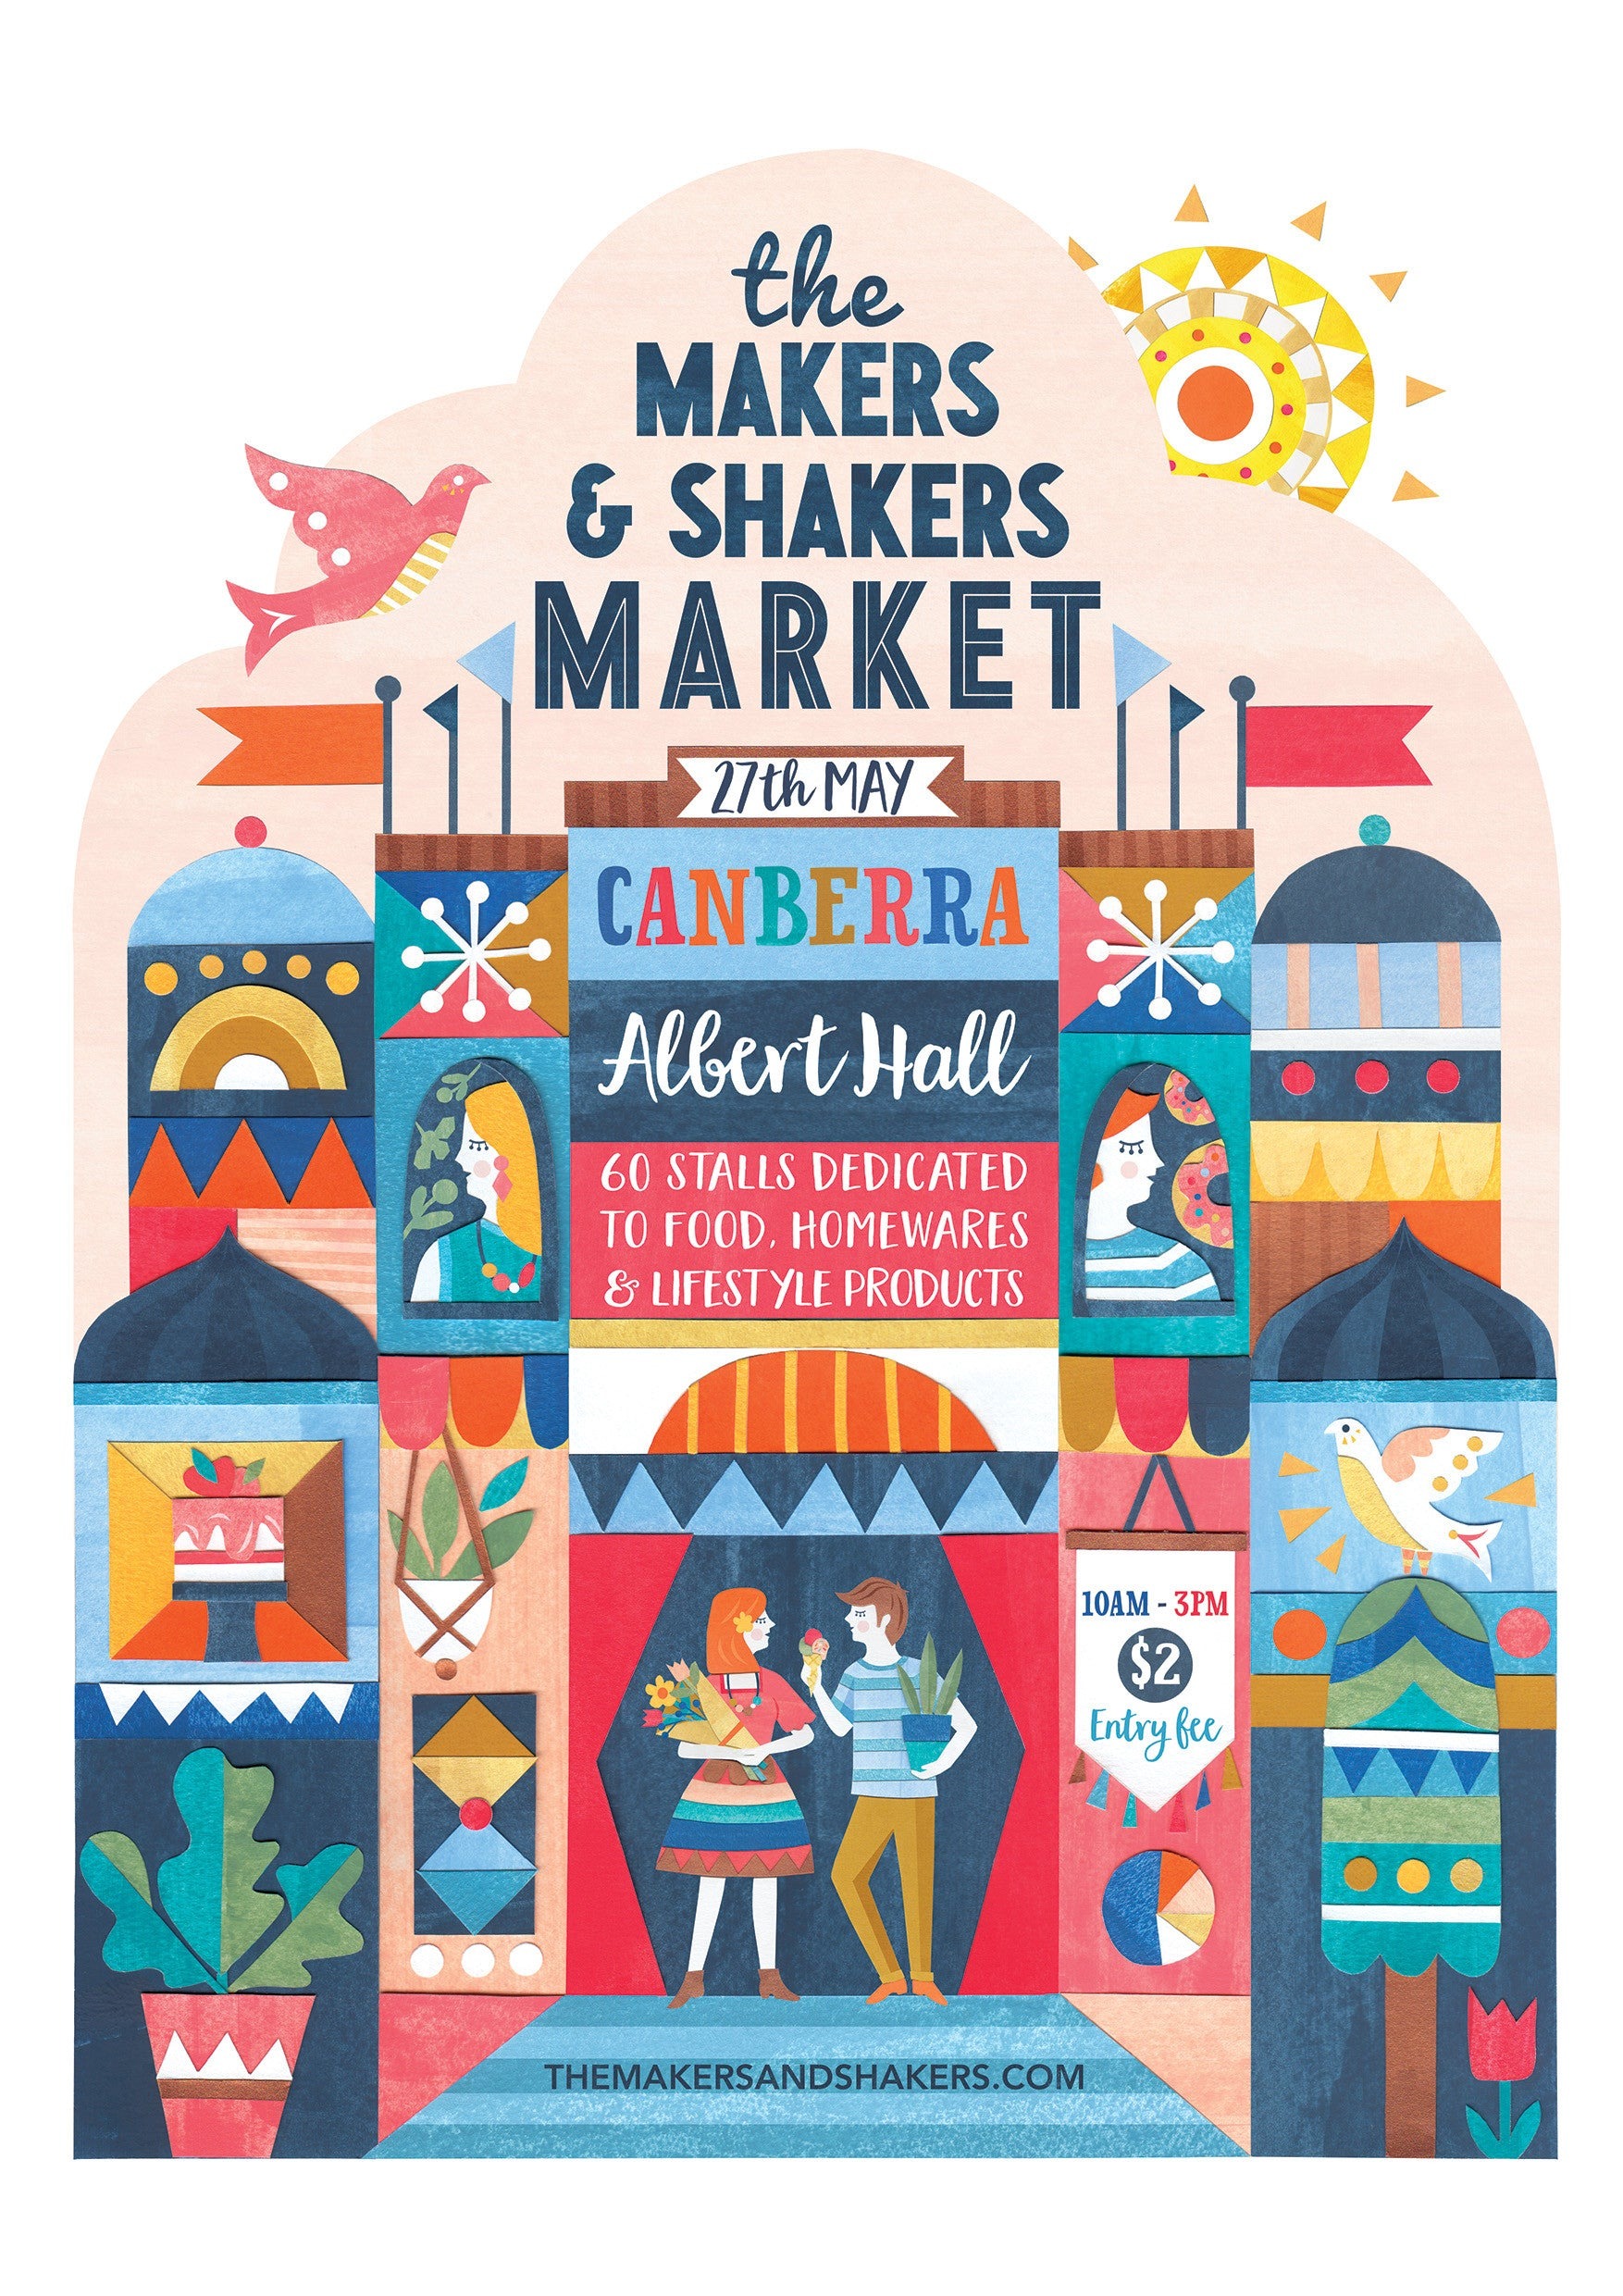 Hello Canberra! See you at The Makers & Shakers Market 27 May!